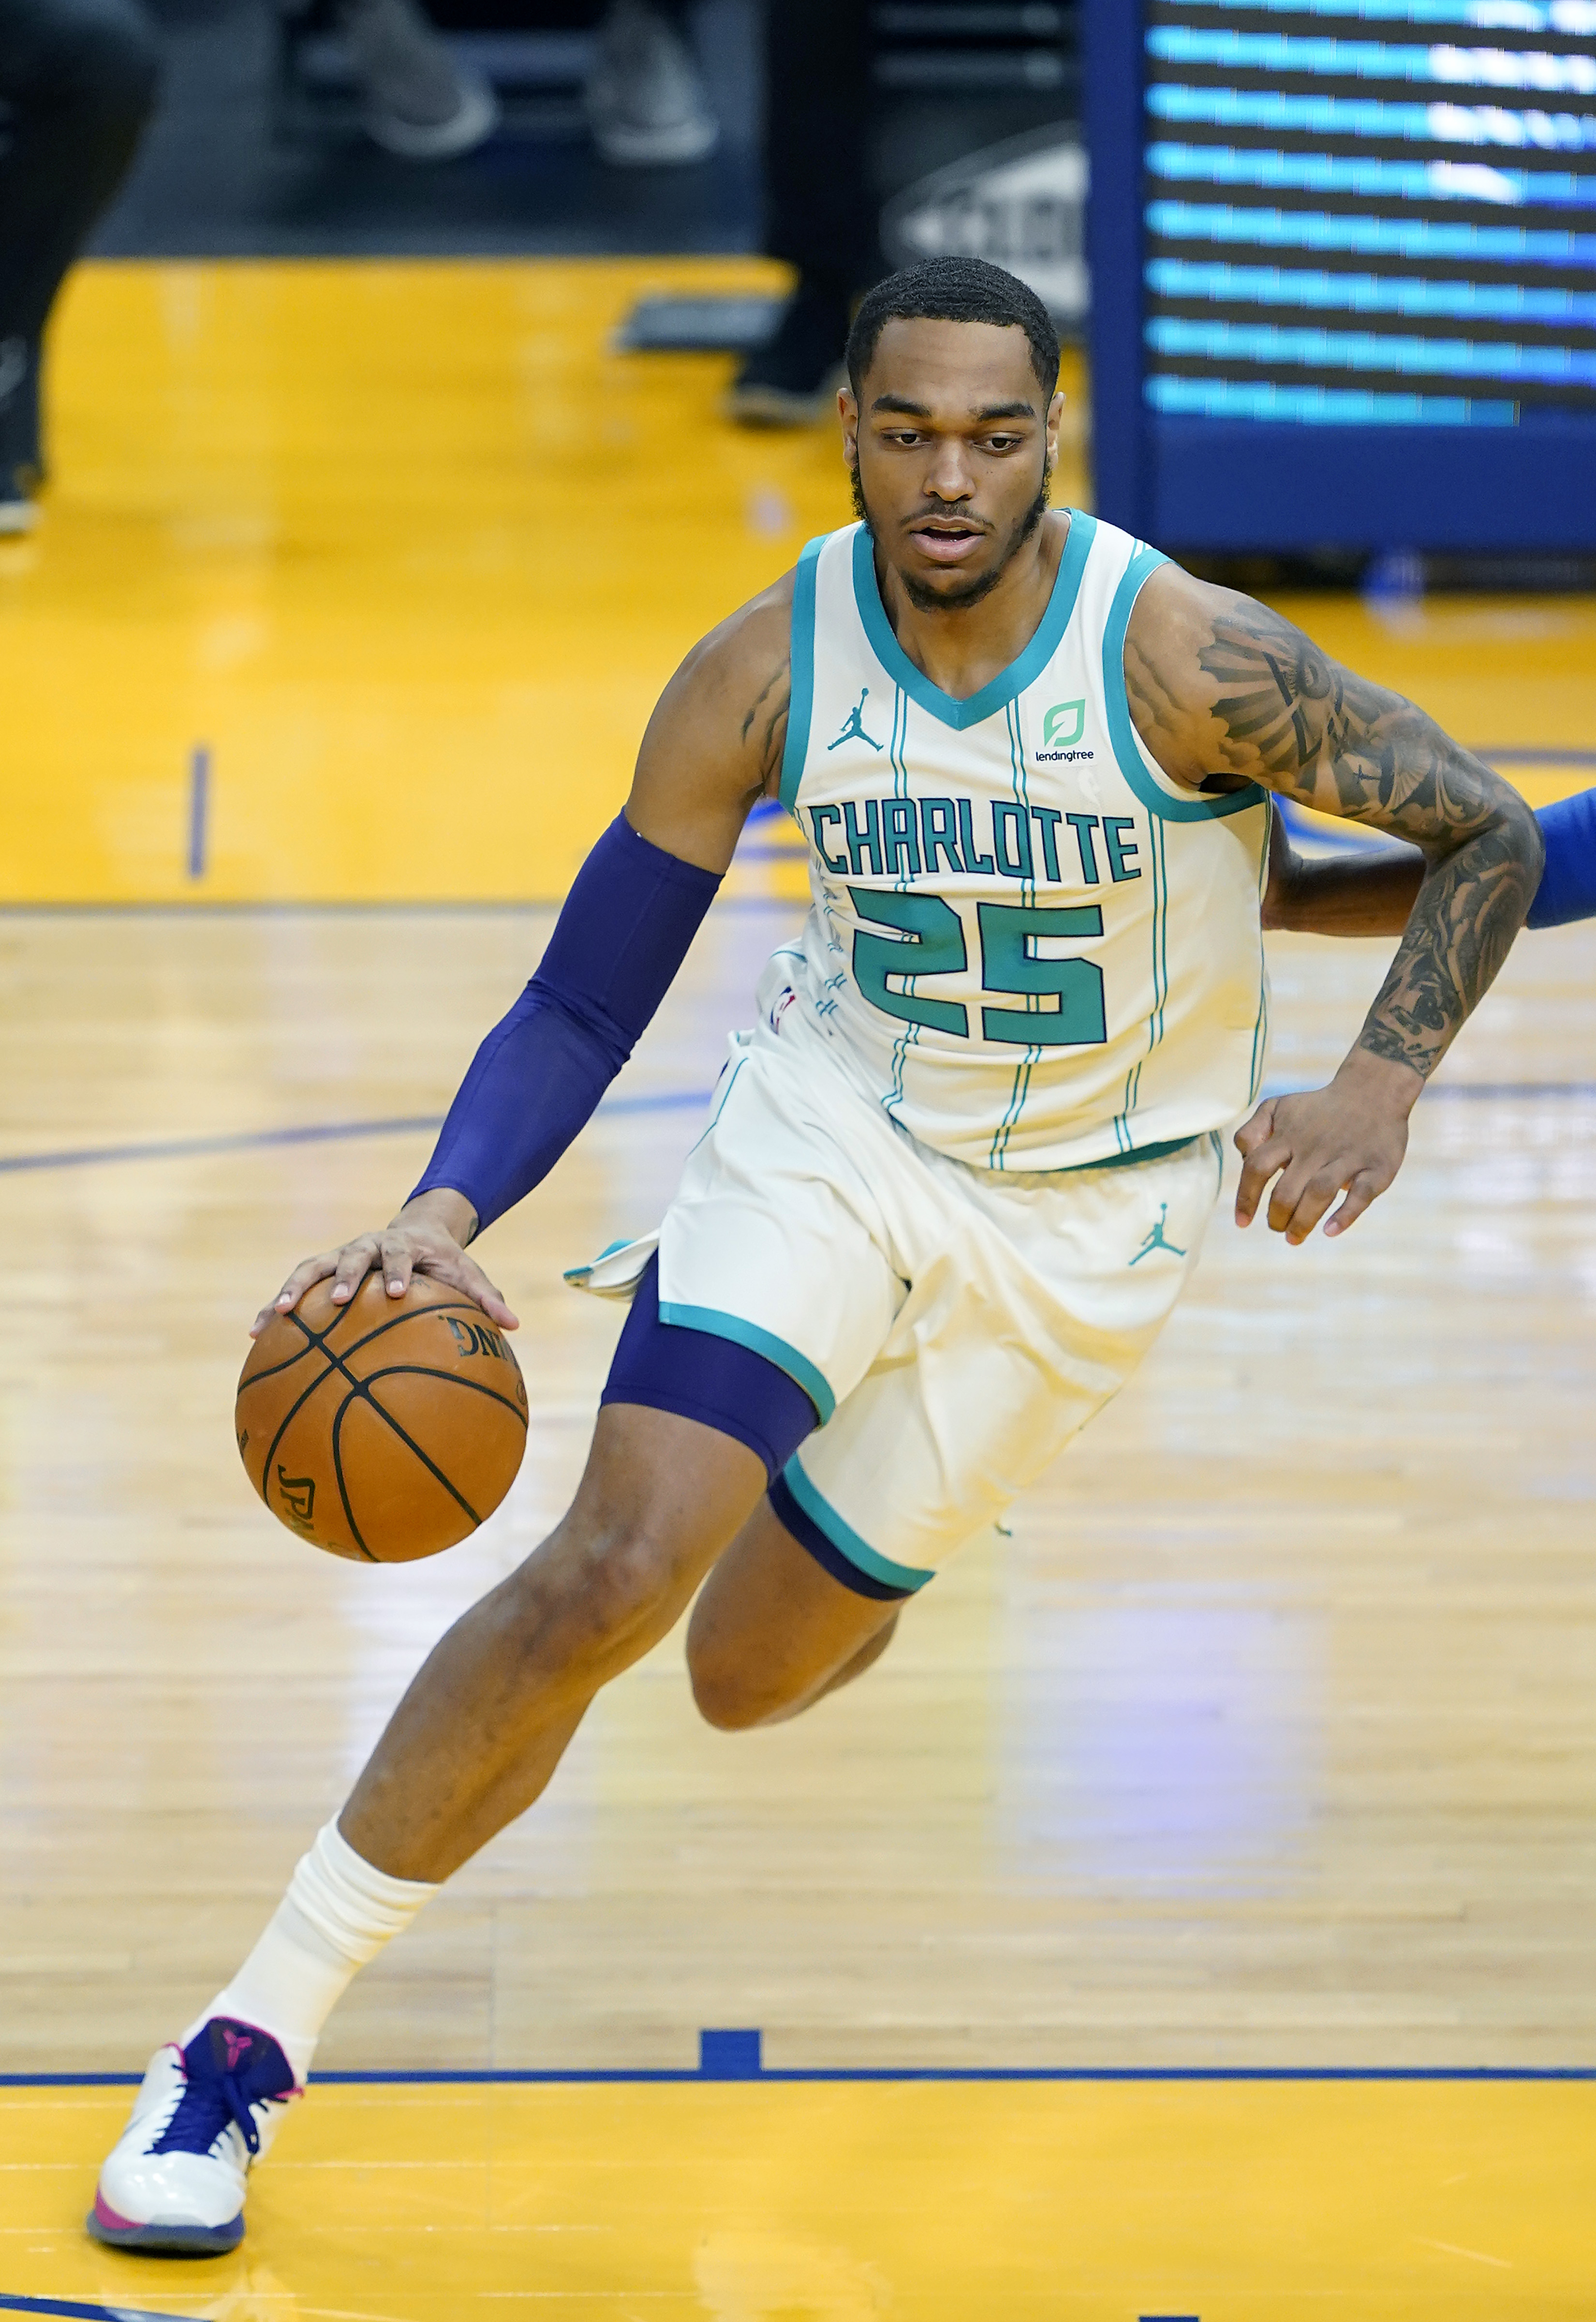 P.J. Washington of the Charlotte Hornets dribbles the ball across the key against the Golden State Warriors during the first half of an NBA basketball game at Chase Center on February 26, 2021 in San Francisco, California.